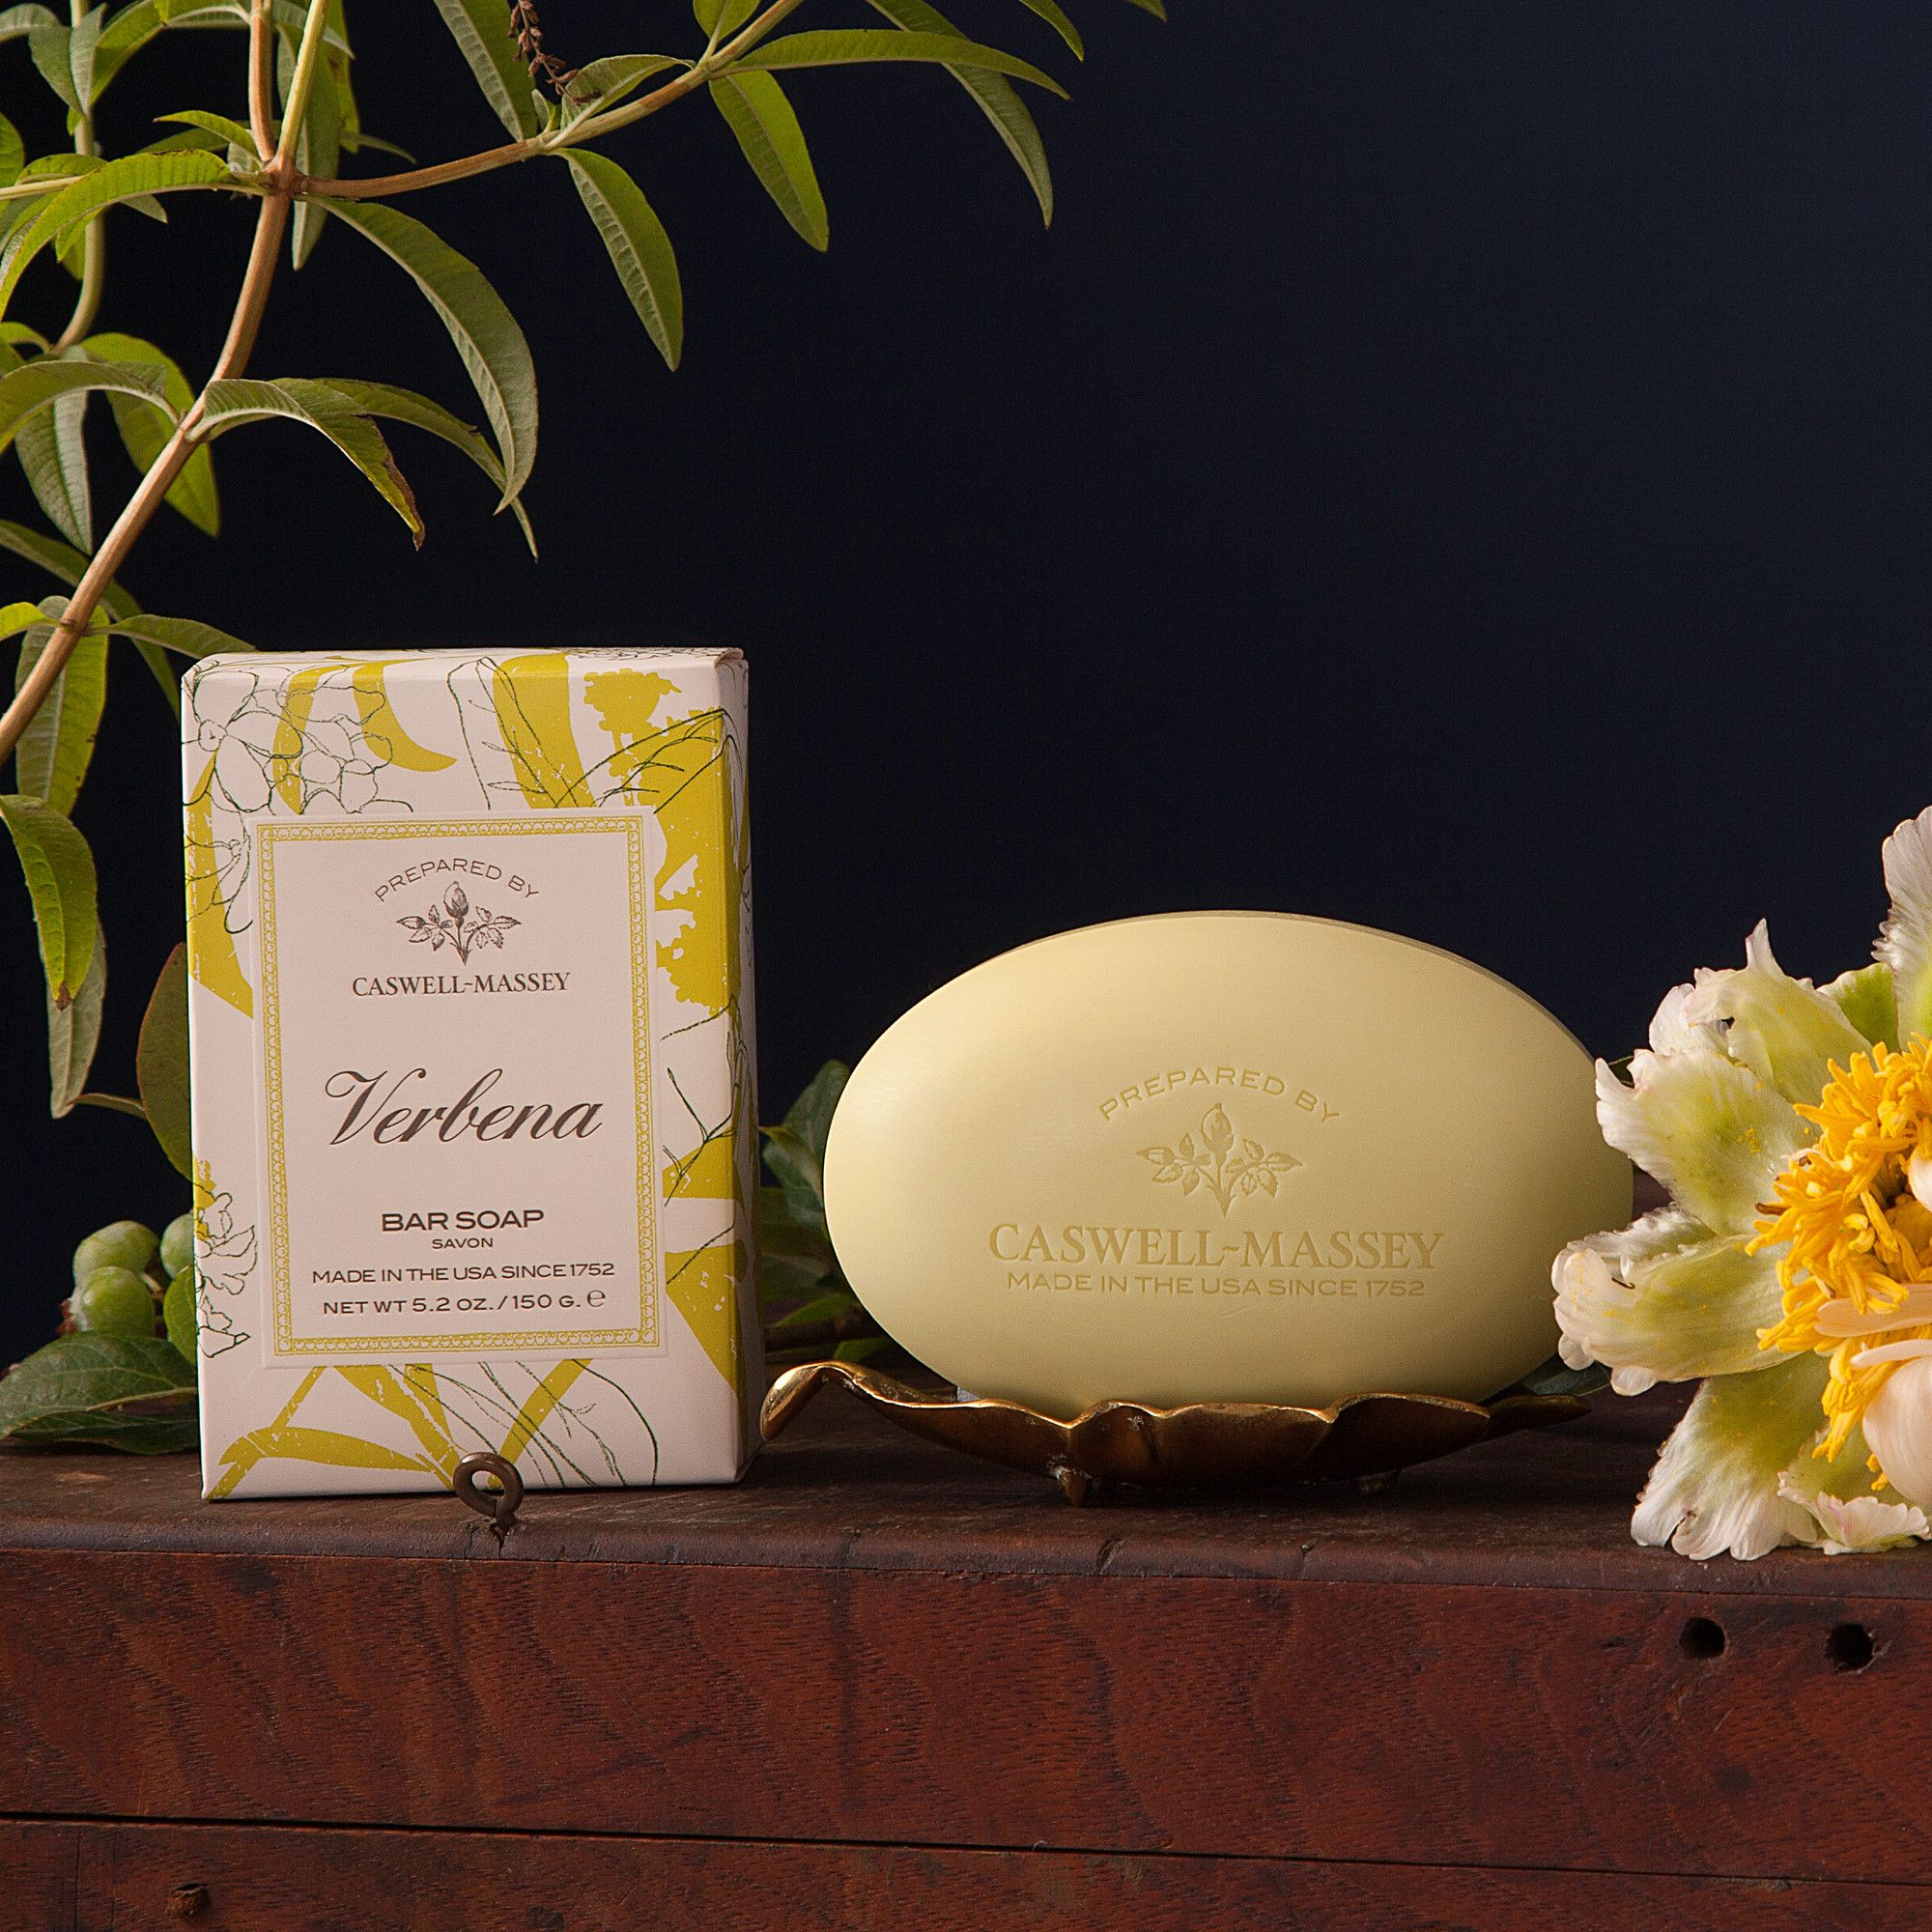 More than 240 different species make up the Verbena family. Our collection uses hints of Mandarin, Spearmint, Basil and Cyprus to create a refreshing experience that revitalizes, replenishes and deeply hydrates the body. Our vegetable-based, Verbena Bar Soap gently cleanses the skin without drying or stripping it of natural oils.  Made in the USA Paraben Free Sulfate Free Phthalate Free Not Tested on Animals  Size, Quantity and Packaging  Verbena Bar Soap One 5.2 oz (150 g...